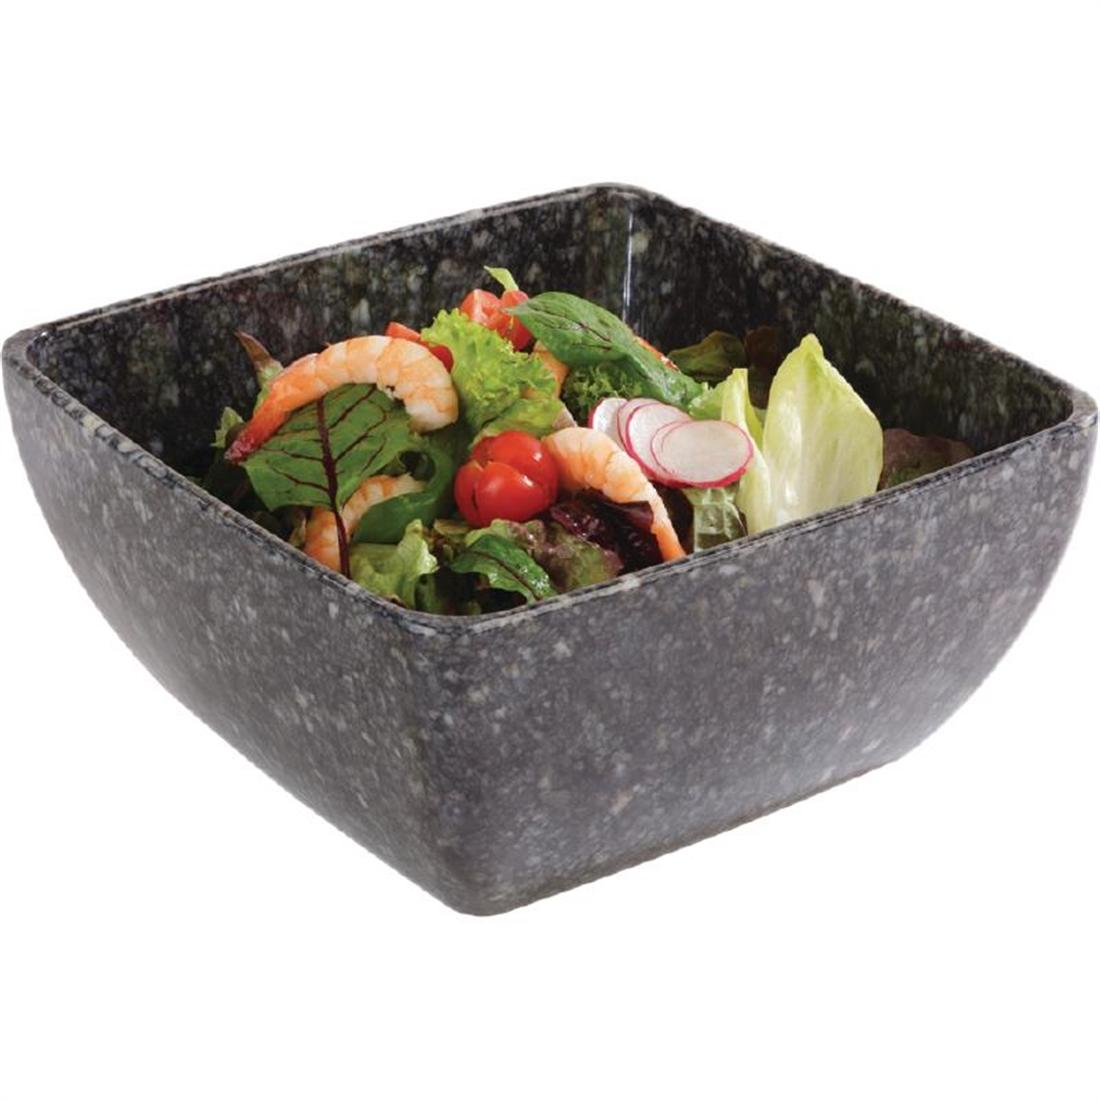 GL606 - Z-DISCONTINUED APS Granite Effect Melamine Tray GN 1/2 - Each - GL606